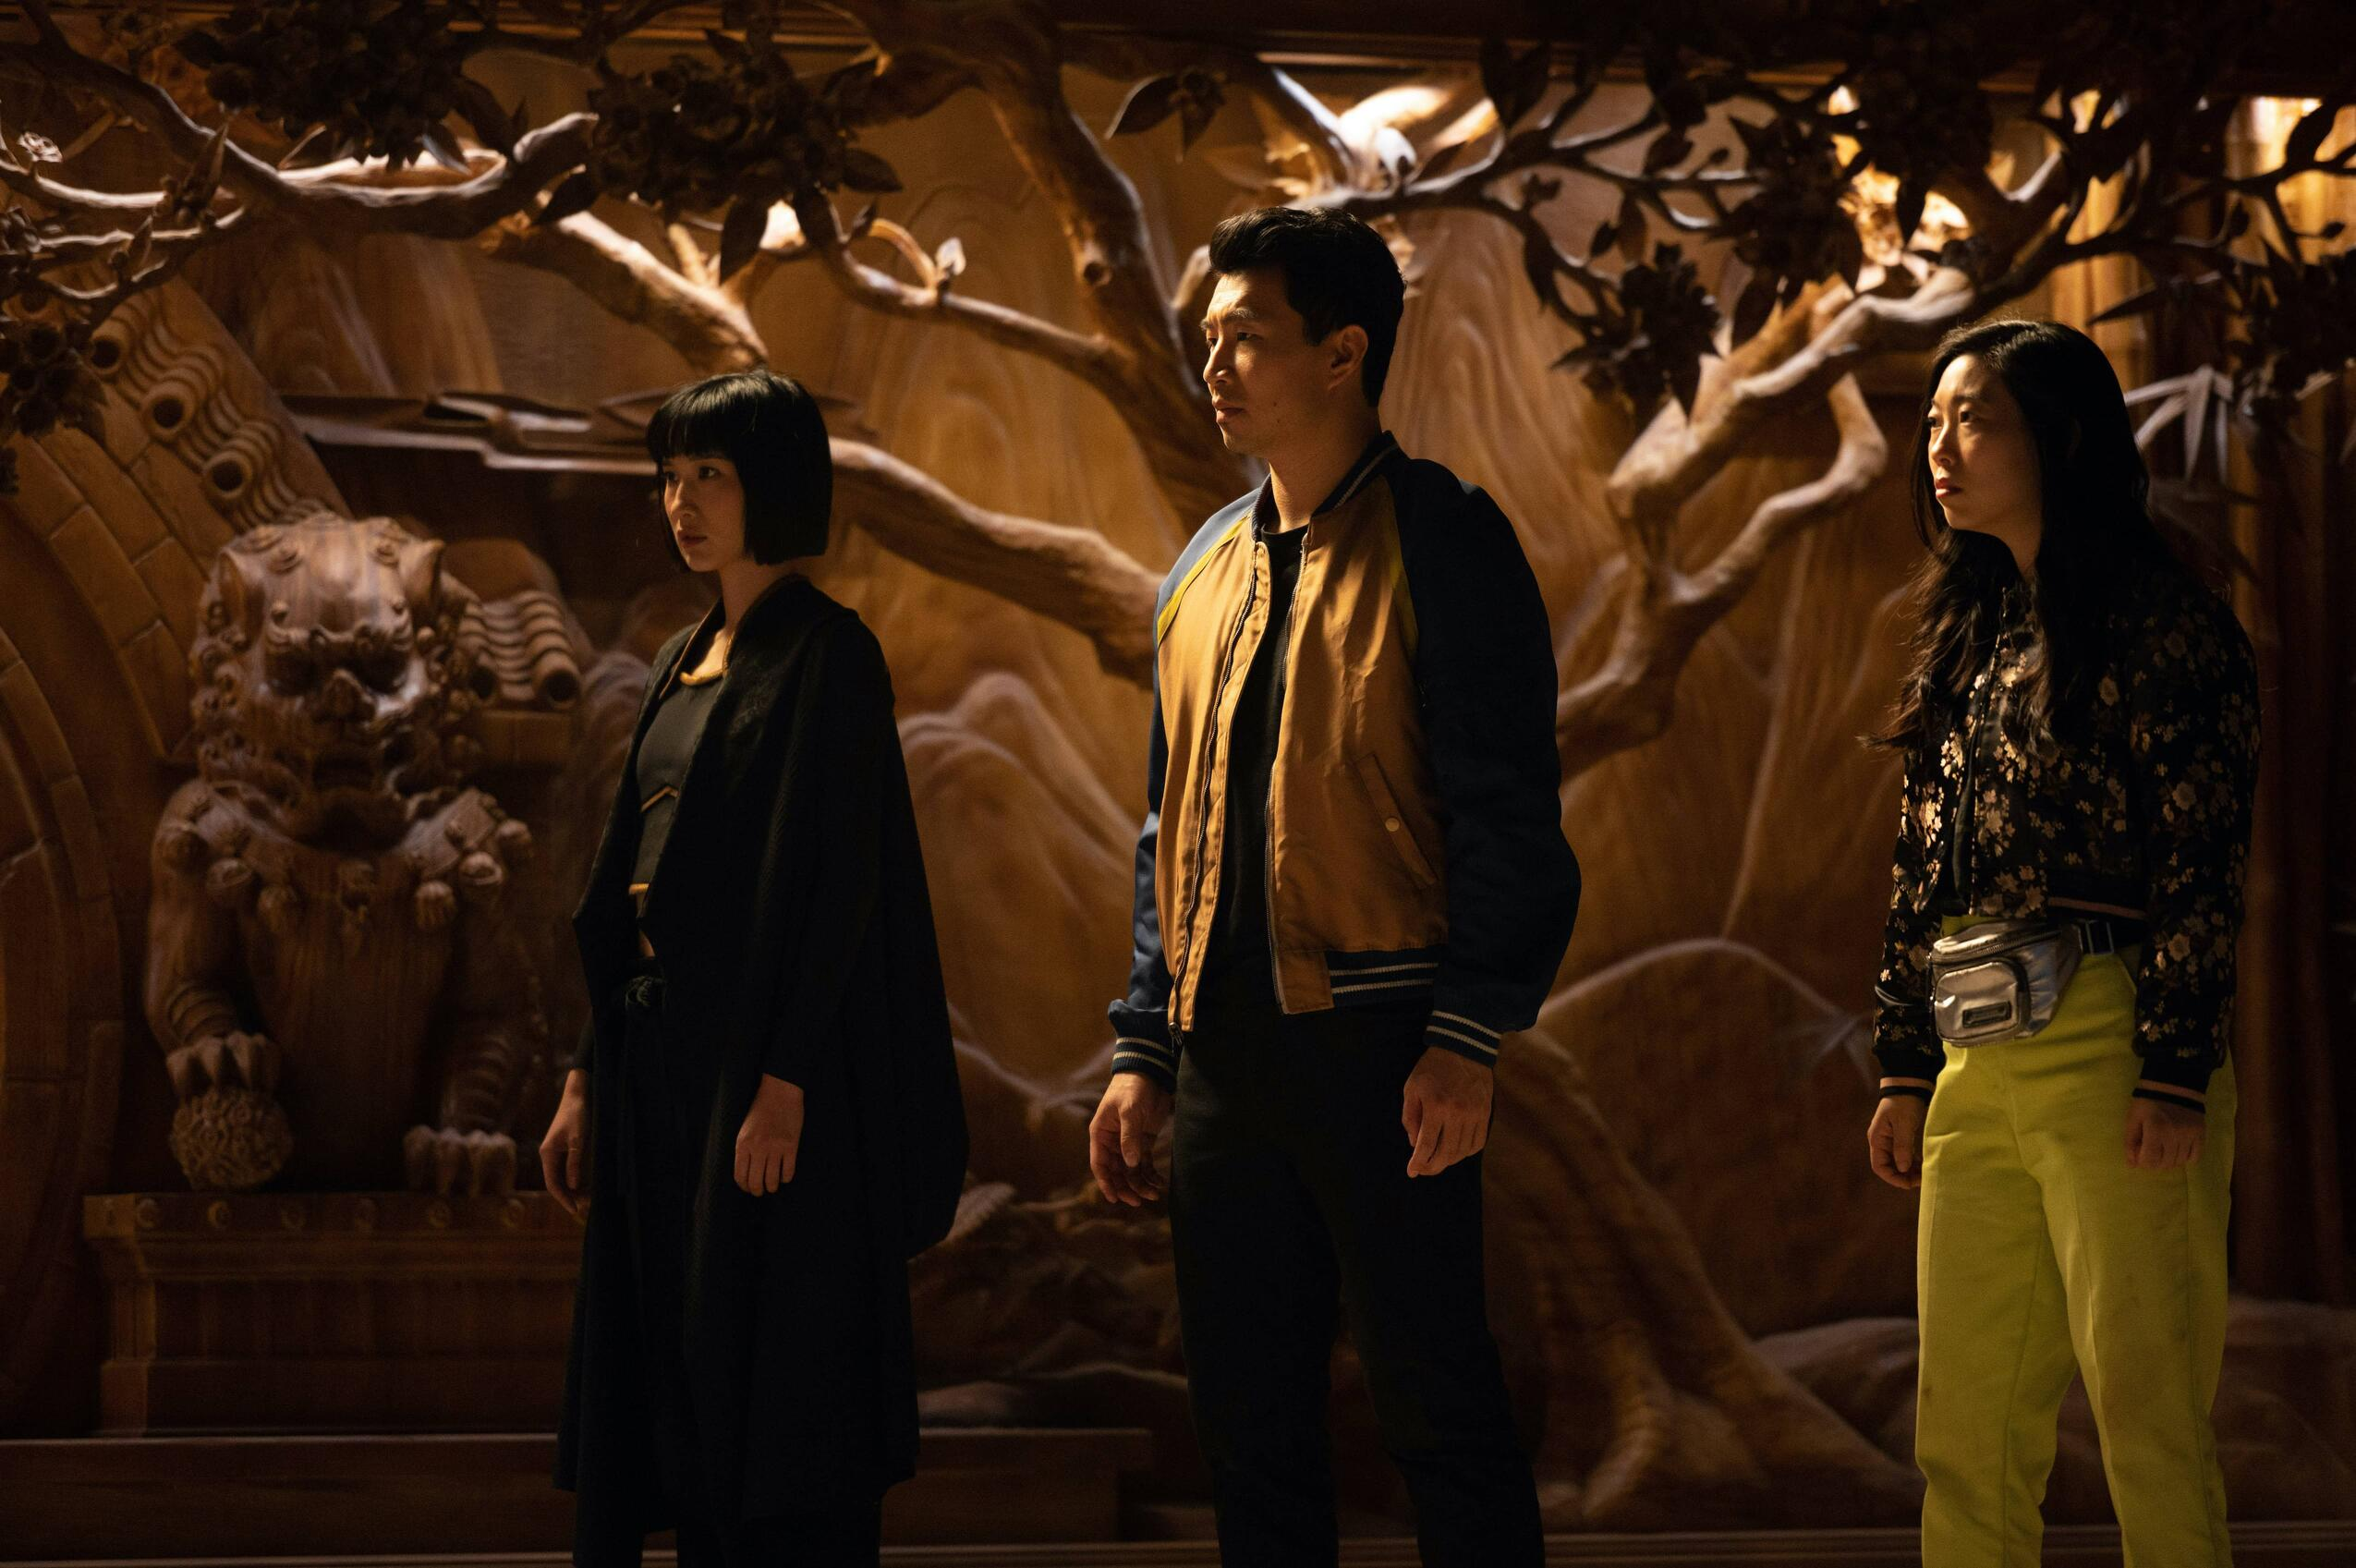 First Look at 'Shang-Chi and the Legend of the Ten Rings'